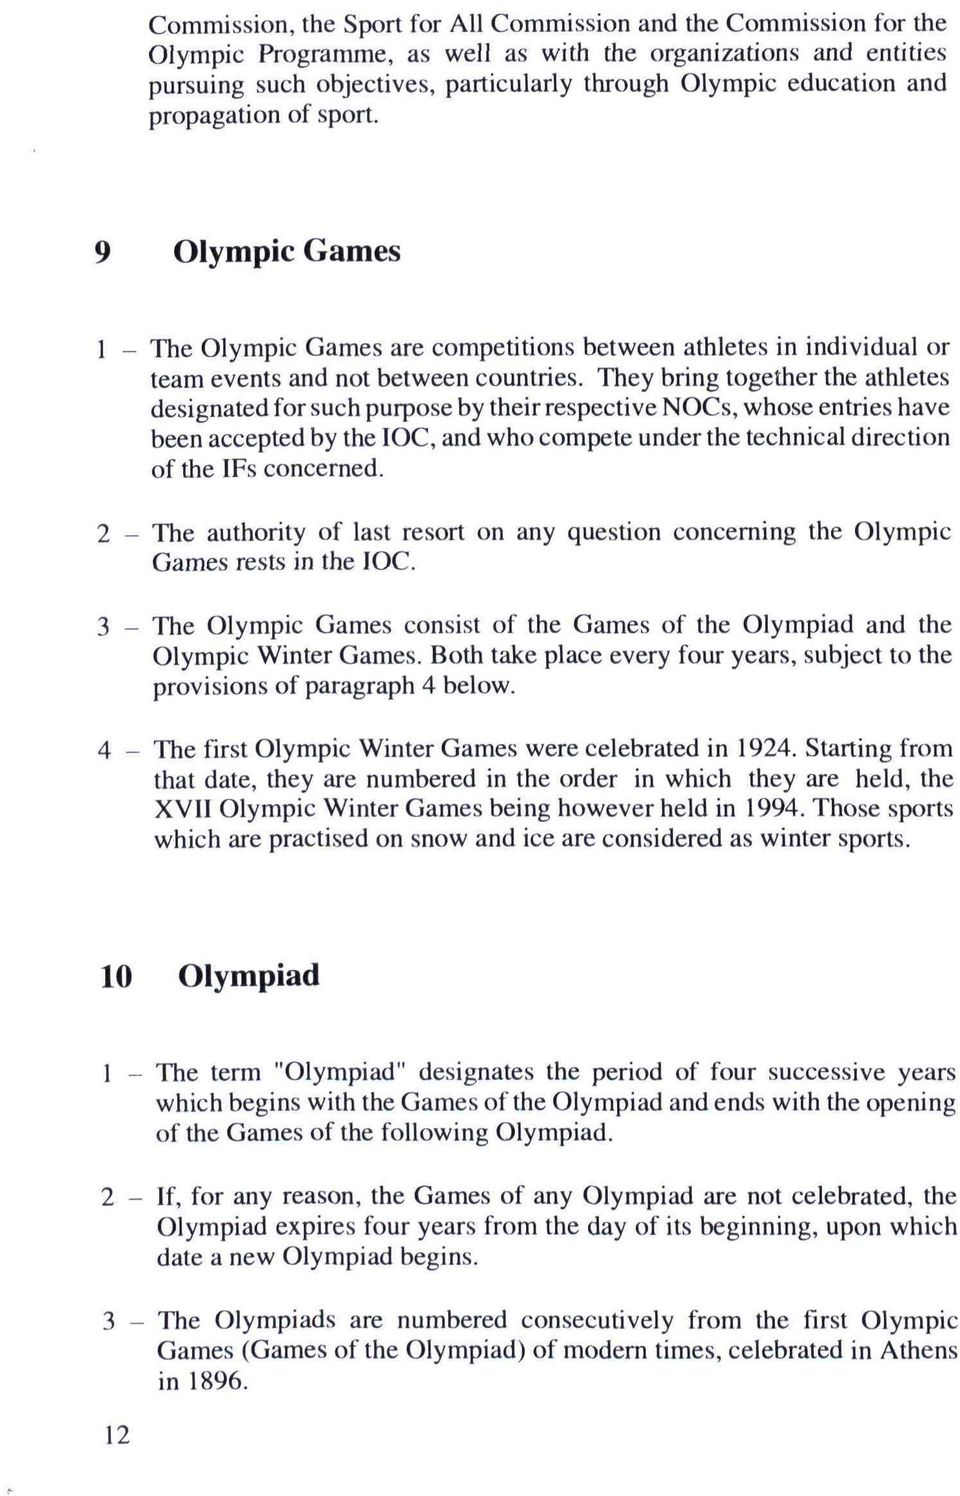 They bring together the athletes designated for such purpose by their respective NOCs, whose entries have been accepted by the IOC, and who compete under the technical direction of the IFs concerned.